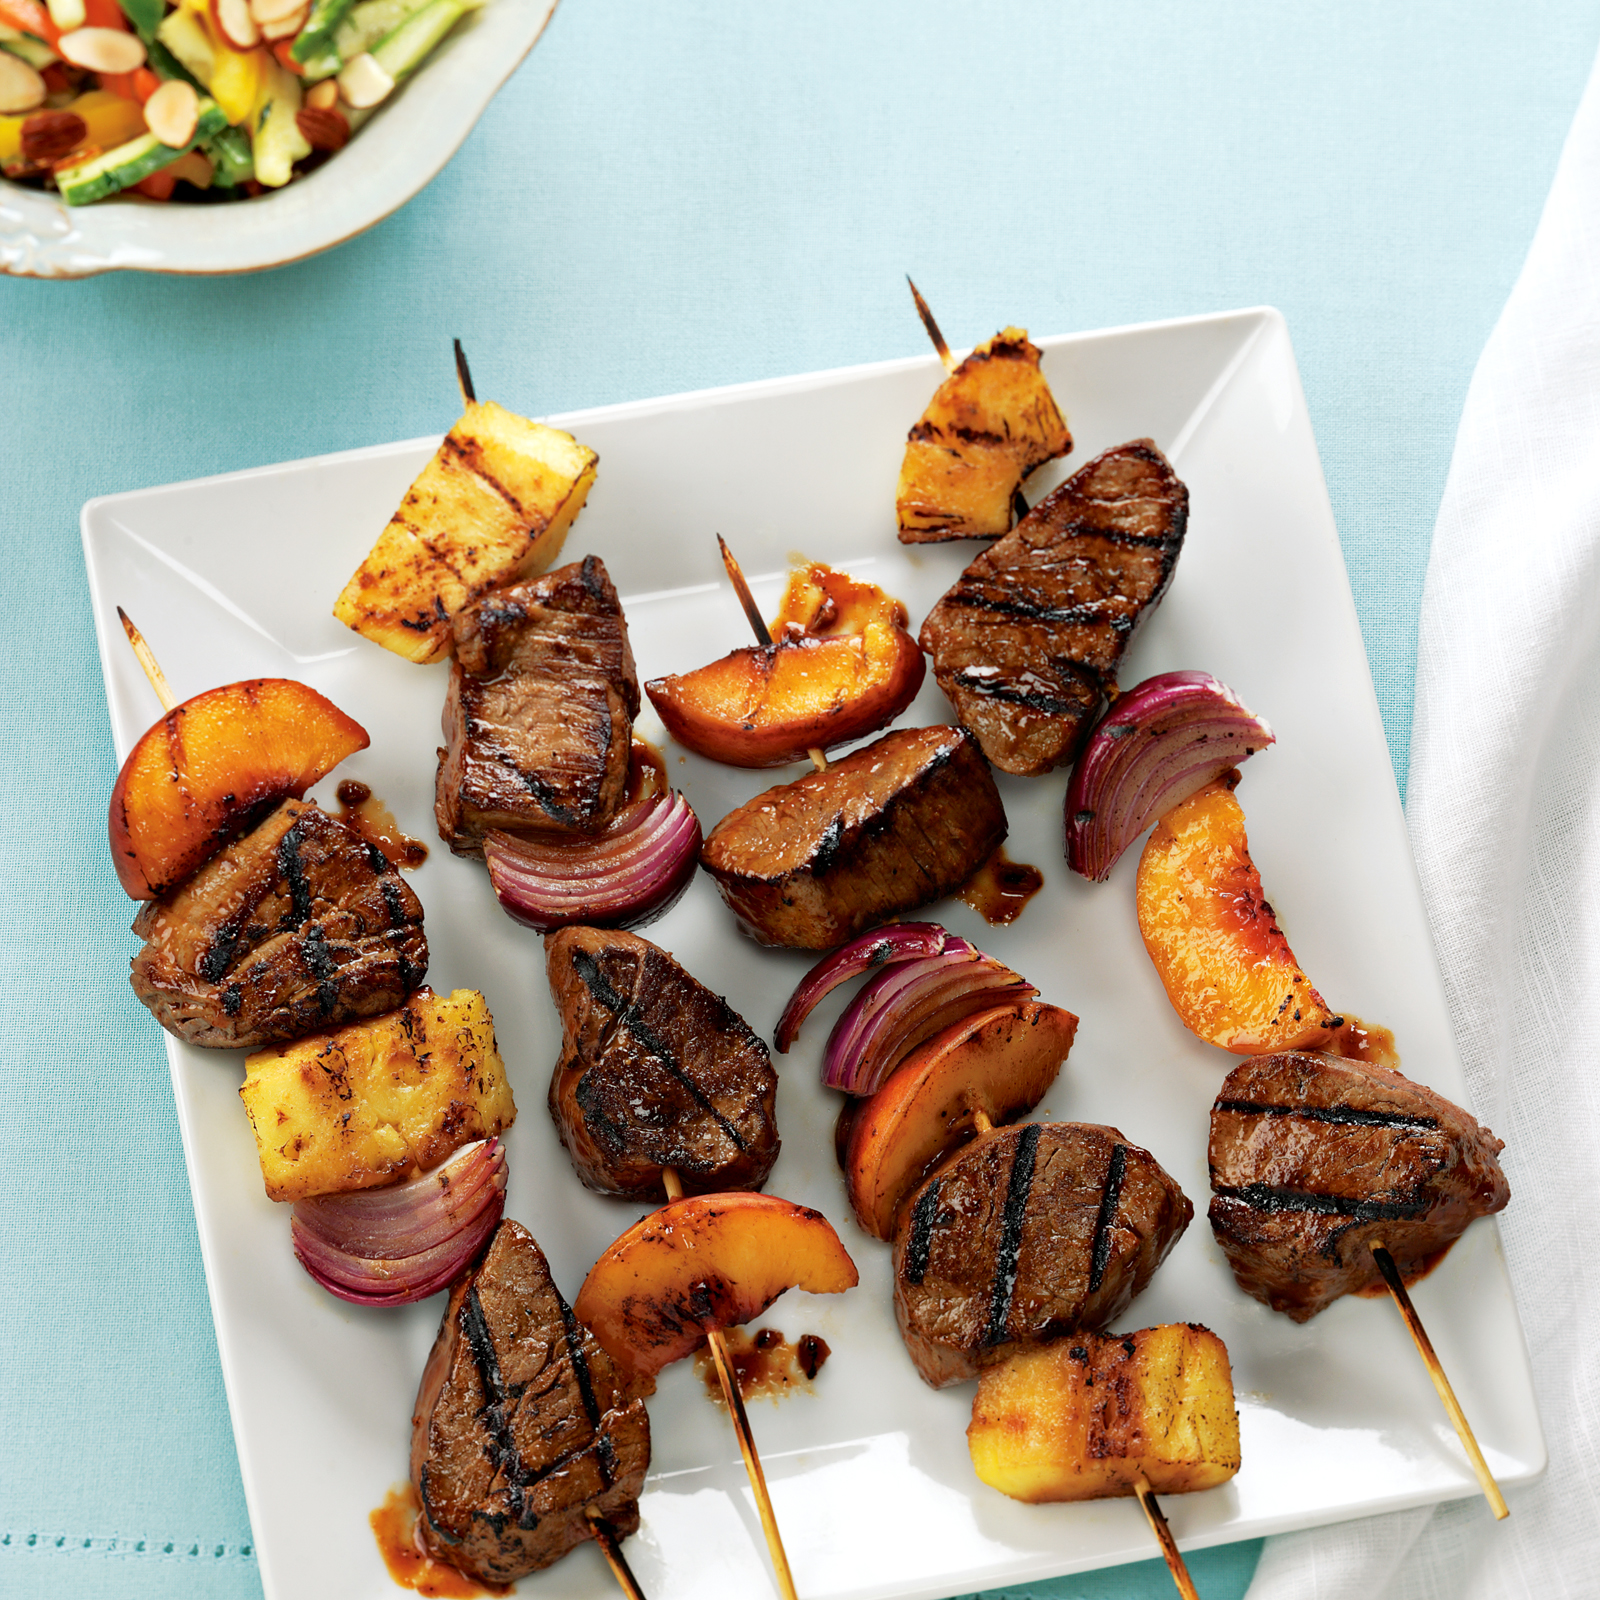 3 Steak Kabob Recipes to Try This Weekend